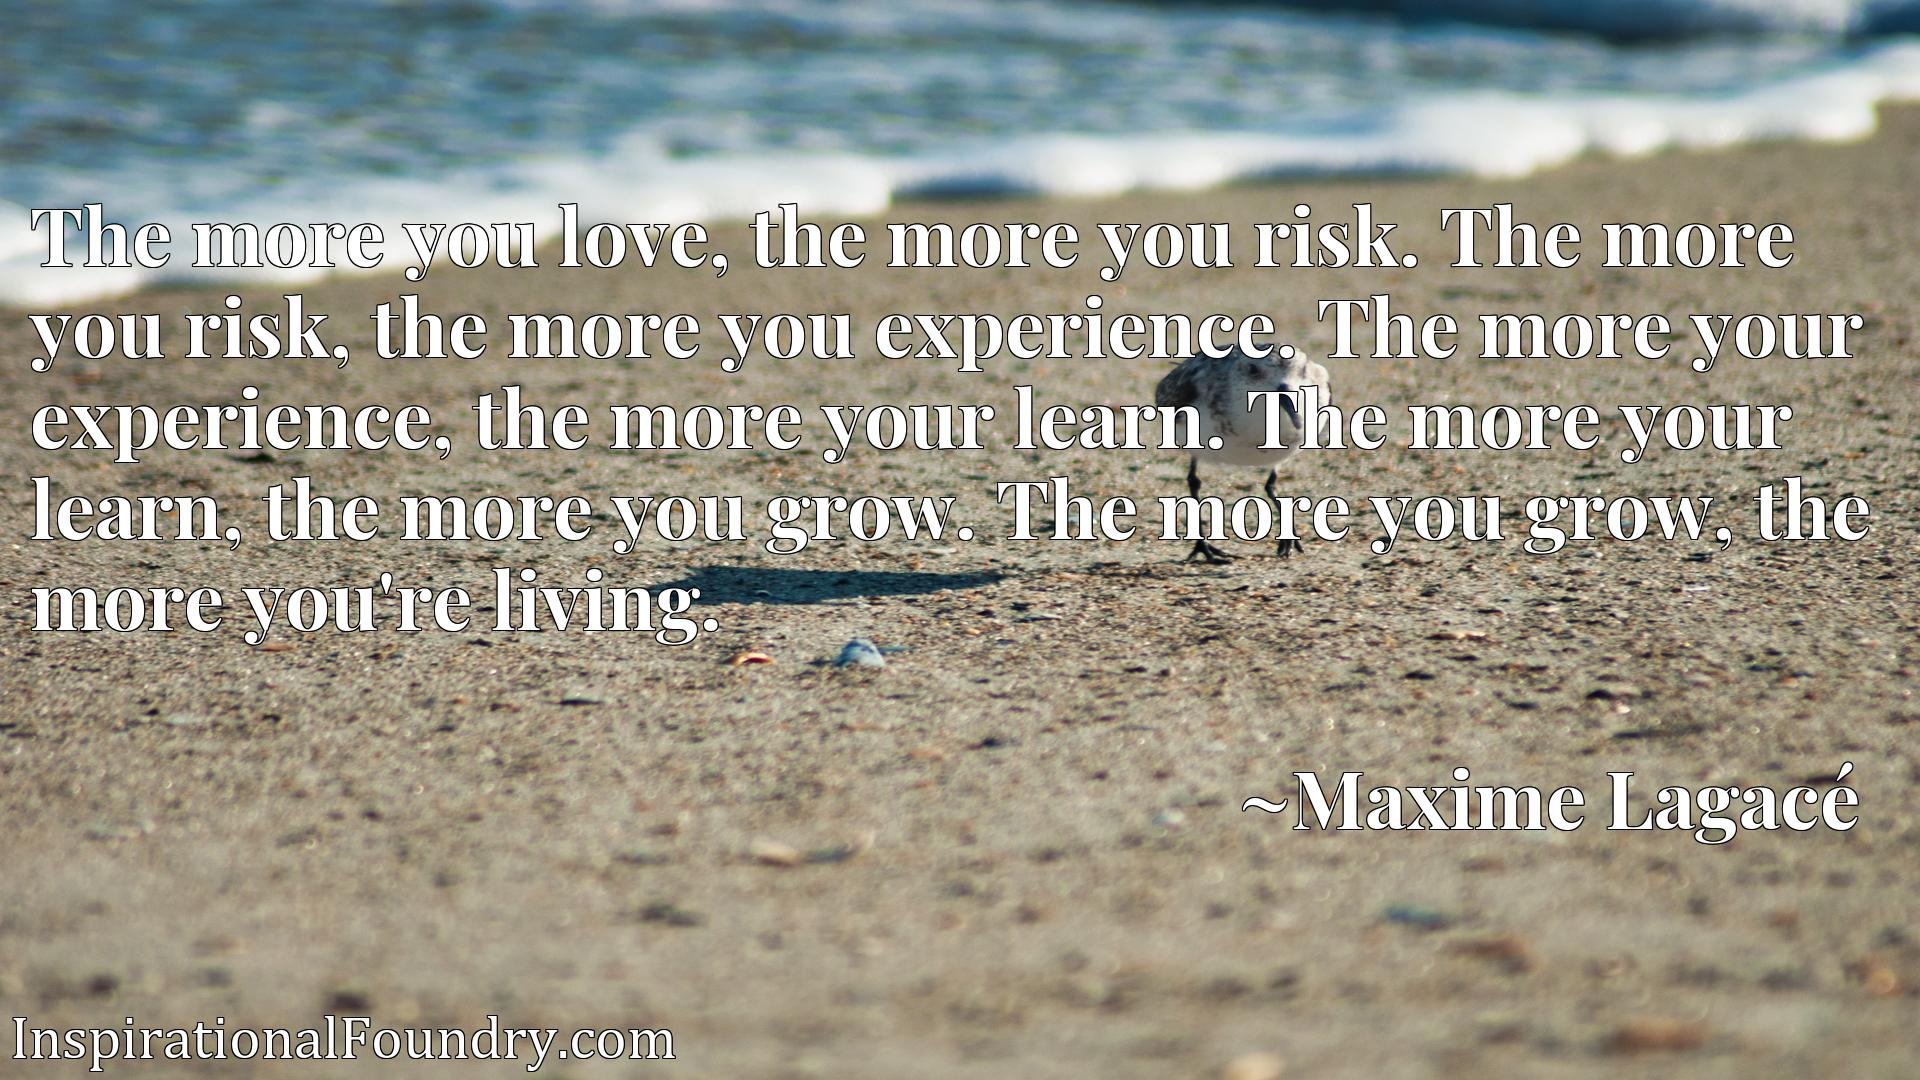 The more you love, the more you risk. The more you risk, the more you experience. The more your experience, the more your learn. The more your learn, the more you grow. The more you grow, the more you're living.